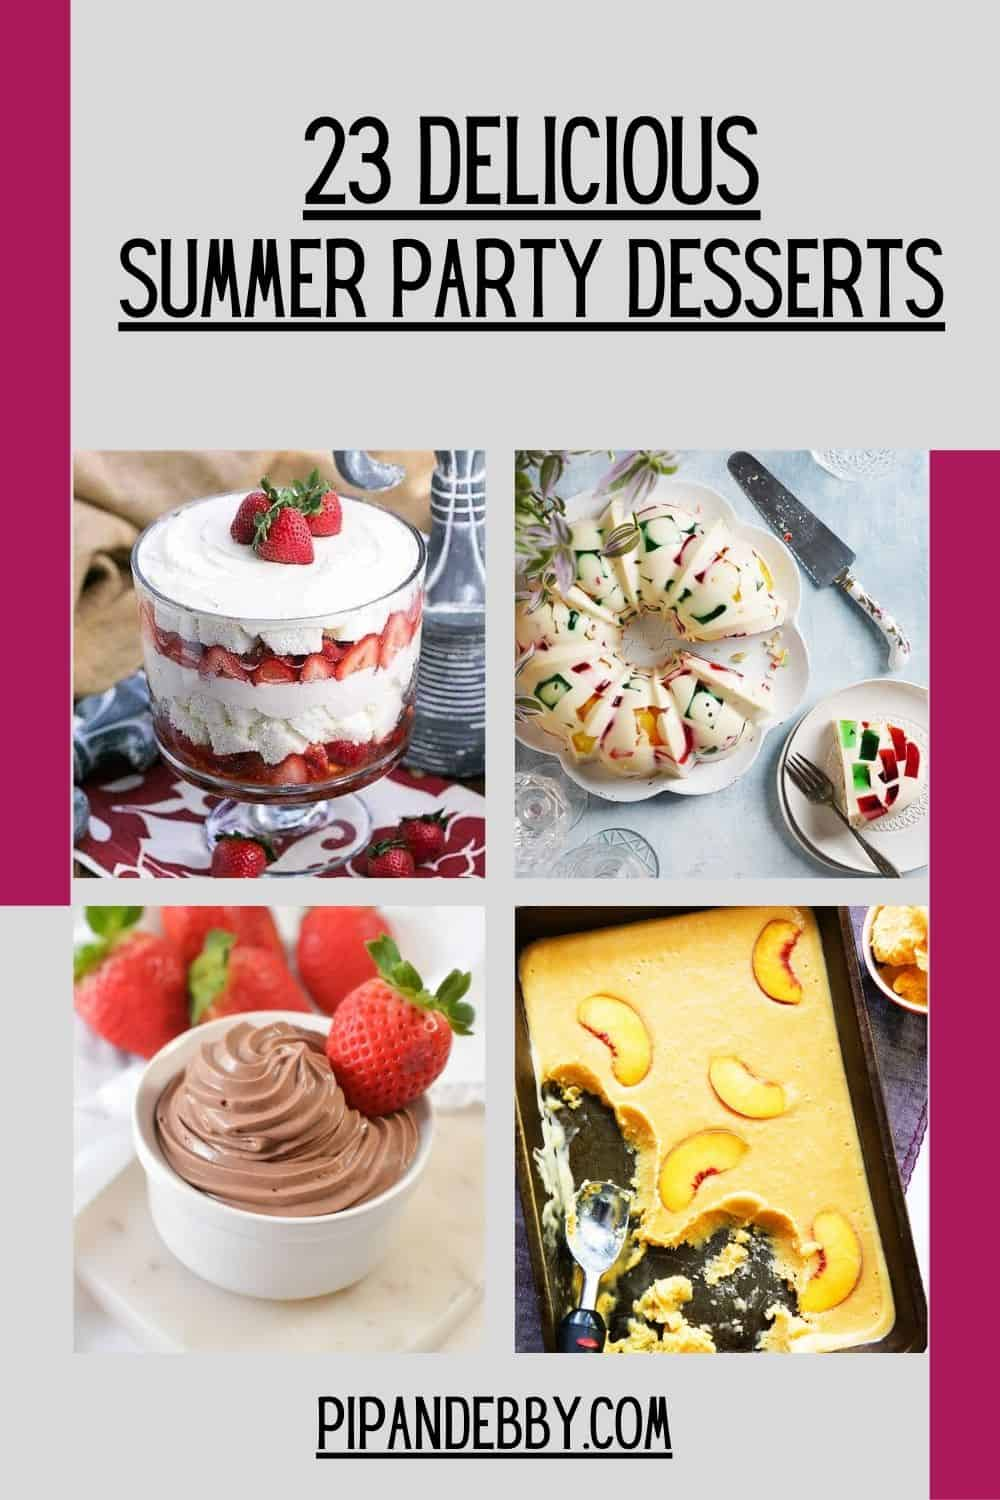 Roundup pin with 4 dessert photos for Pinterest.